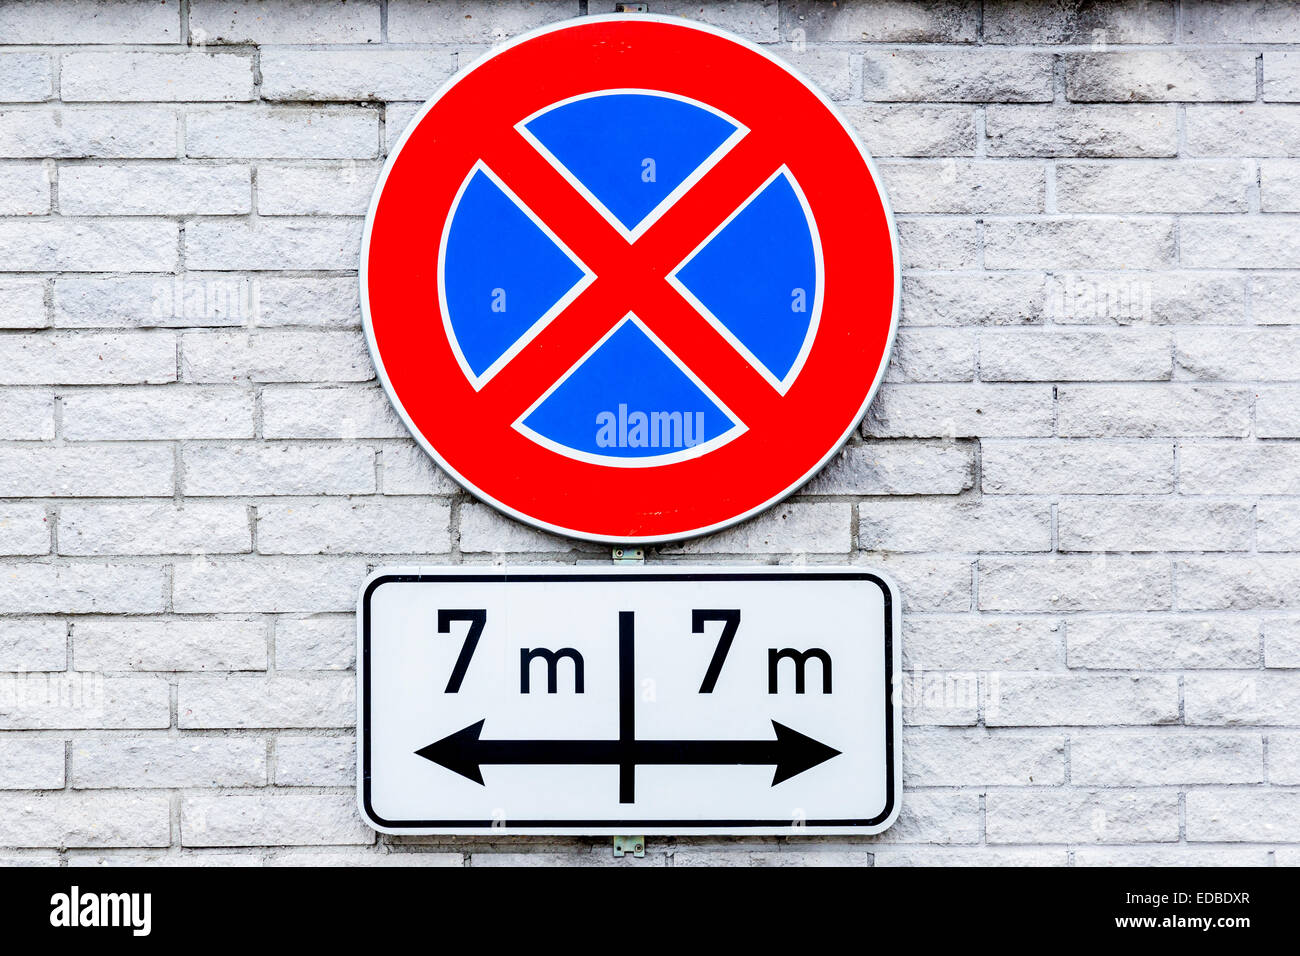 No stopping sign, seven meters to the right and the left, Riga, Latvia - Stock Image